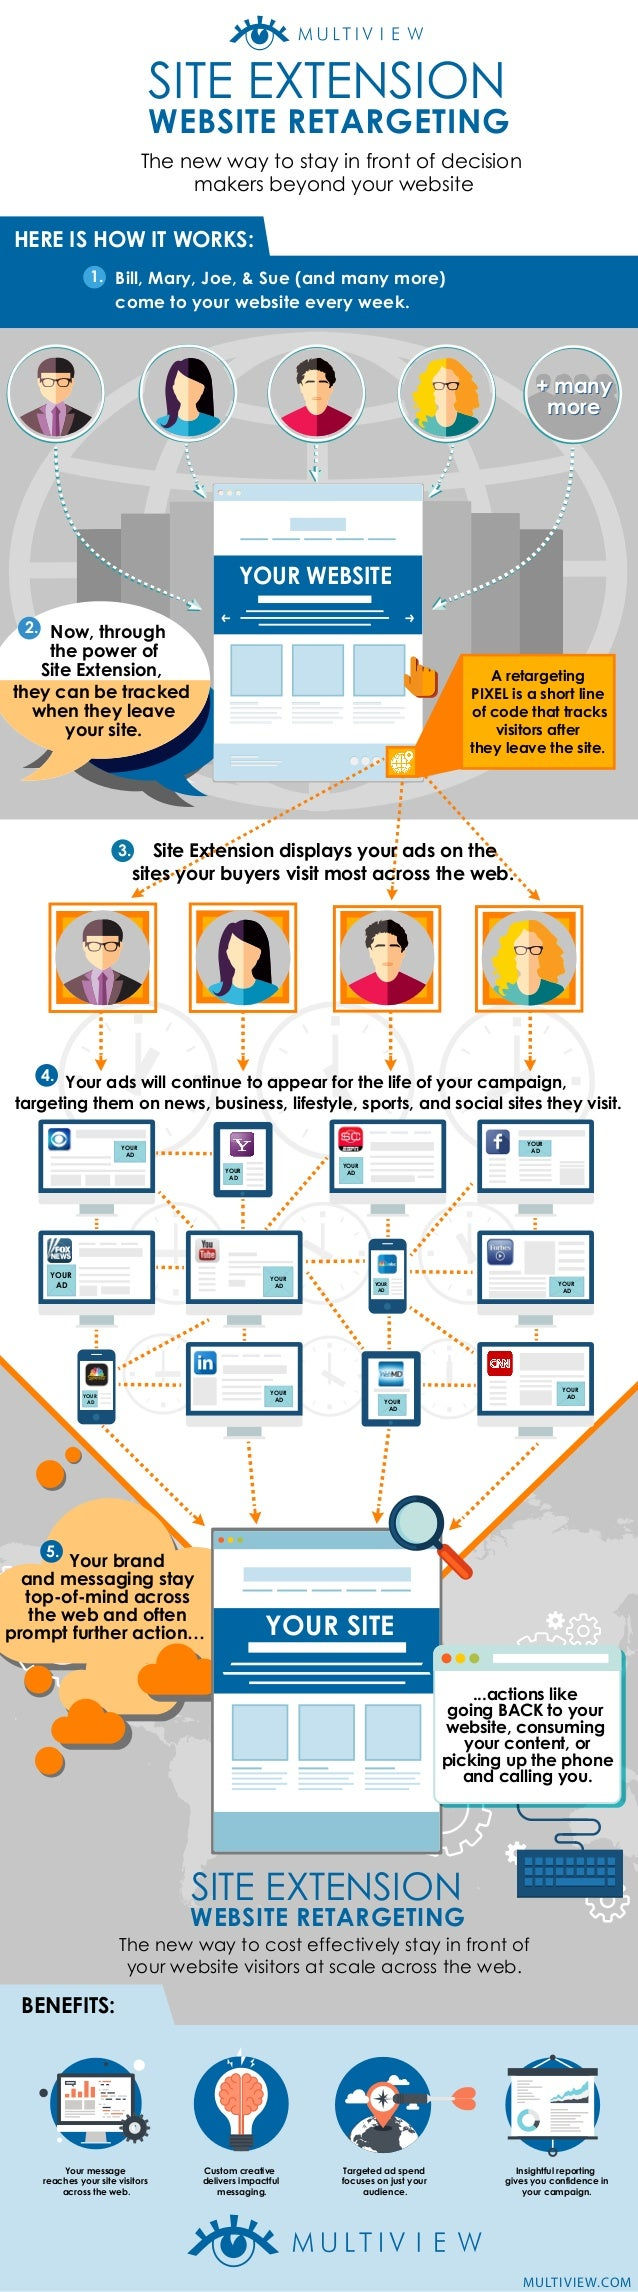 SITE EXTENSION WEBSITE RETARGETING YOUR WEBSITE 3 The new way to stay in front of decision makers beyond your website Site...